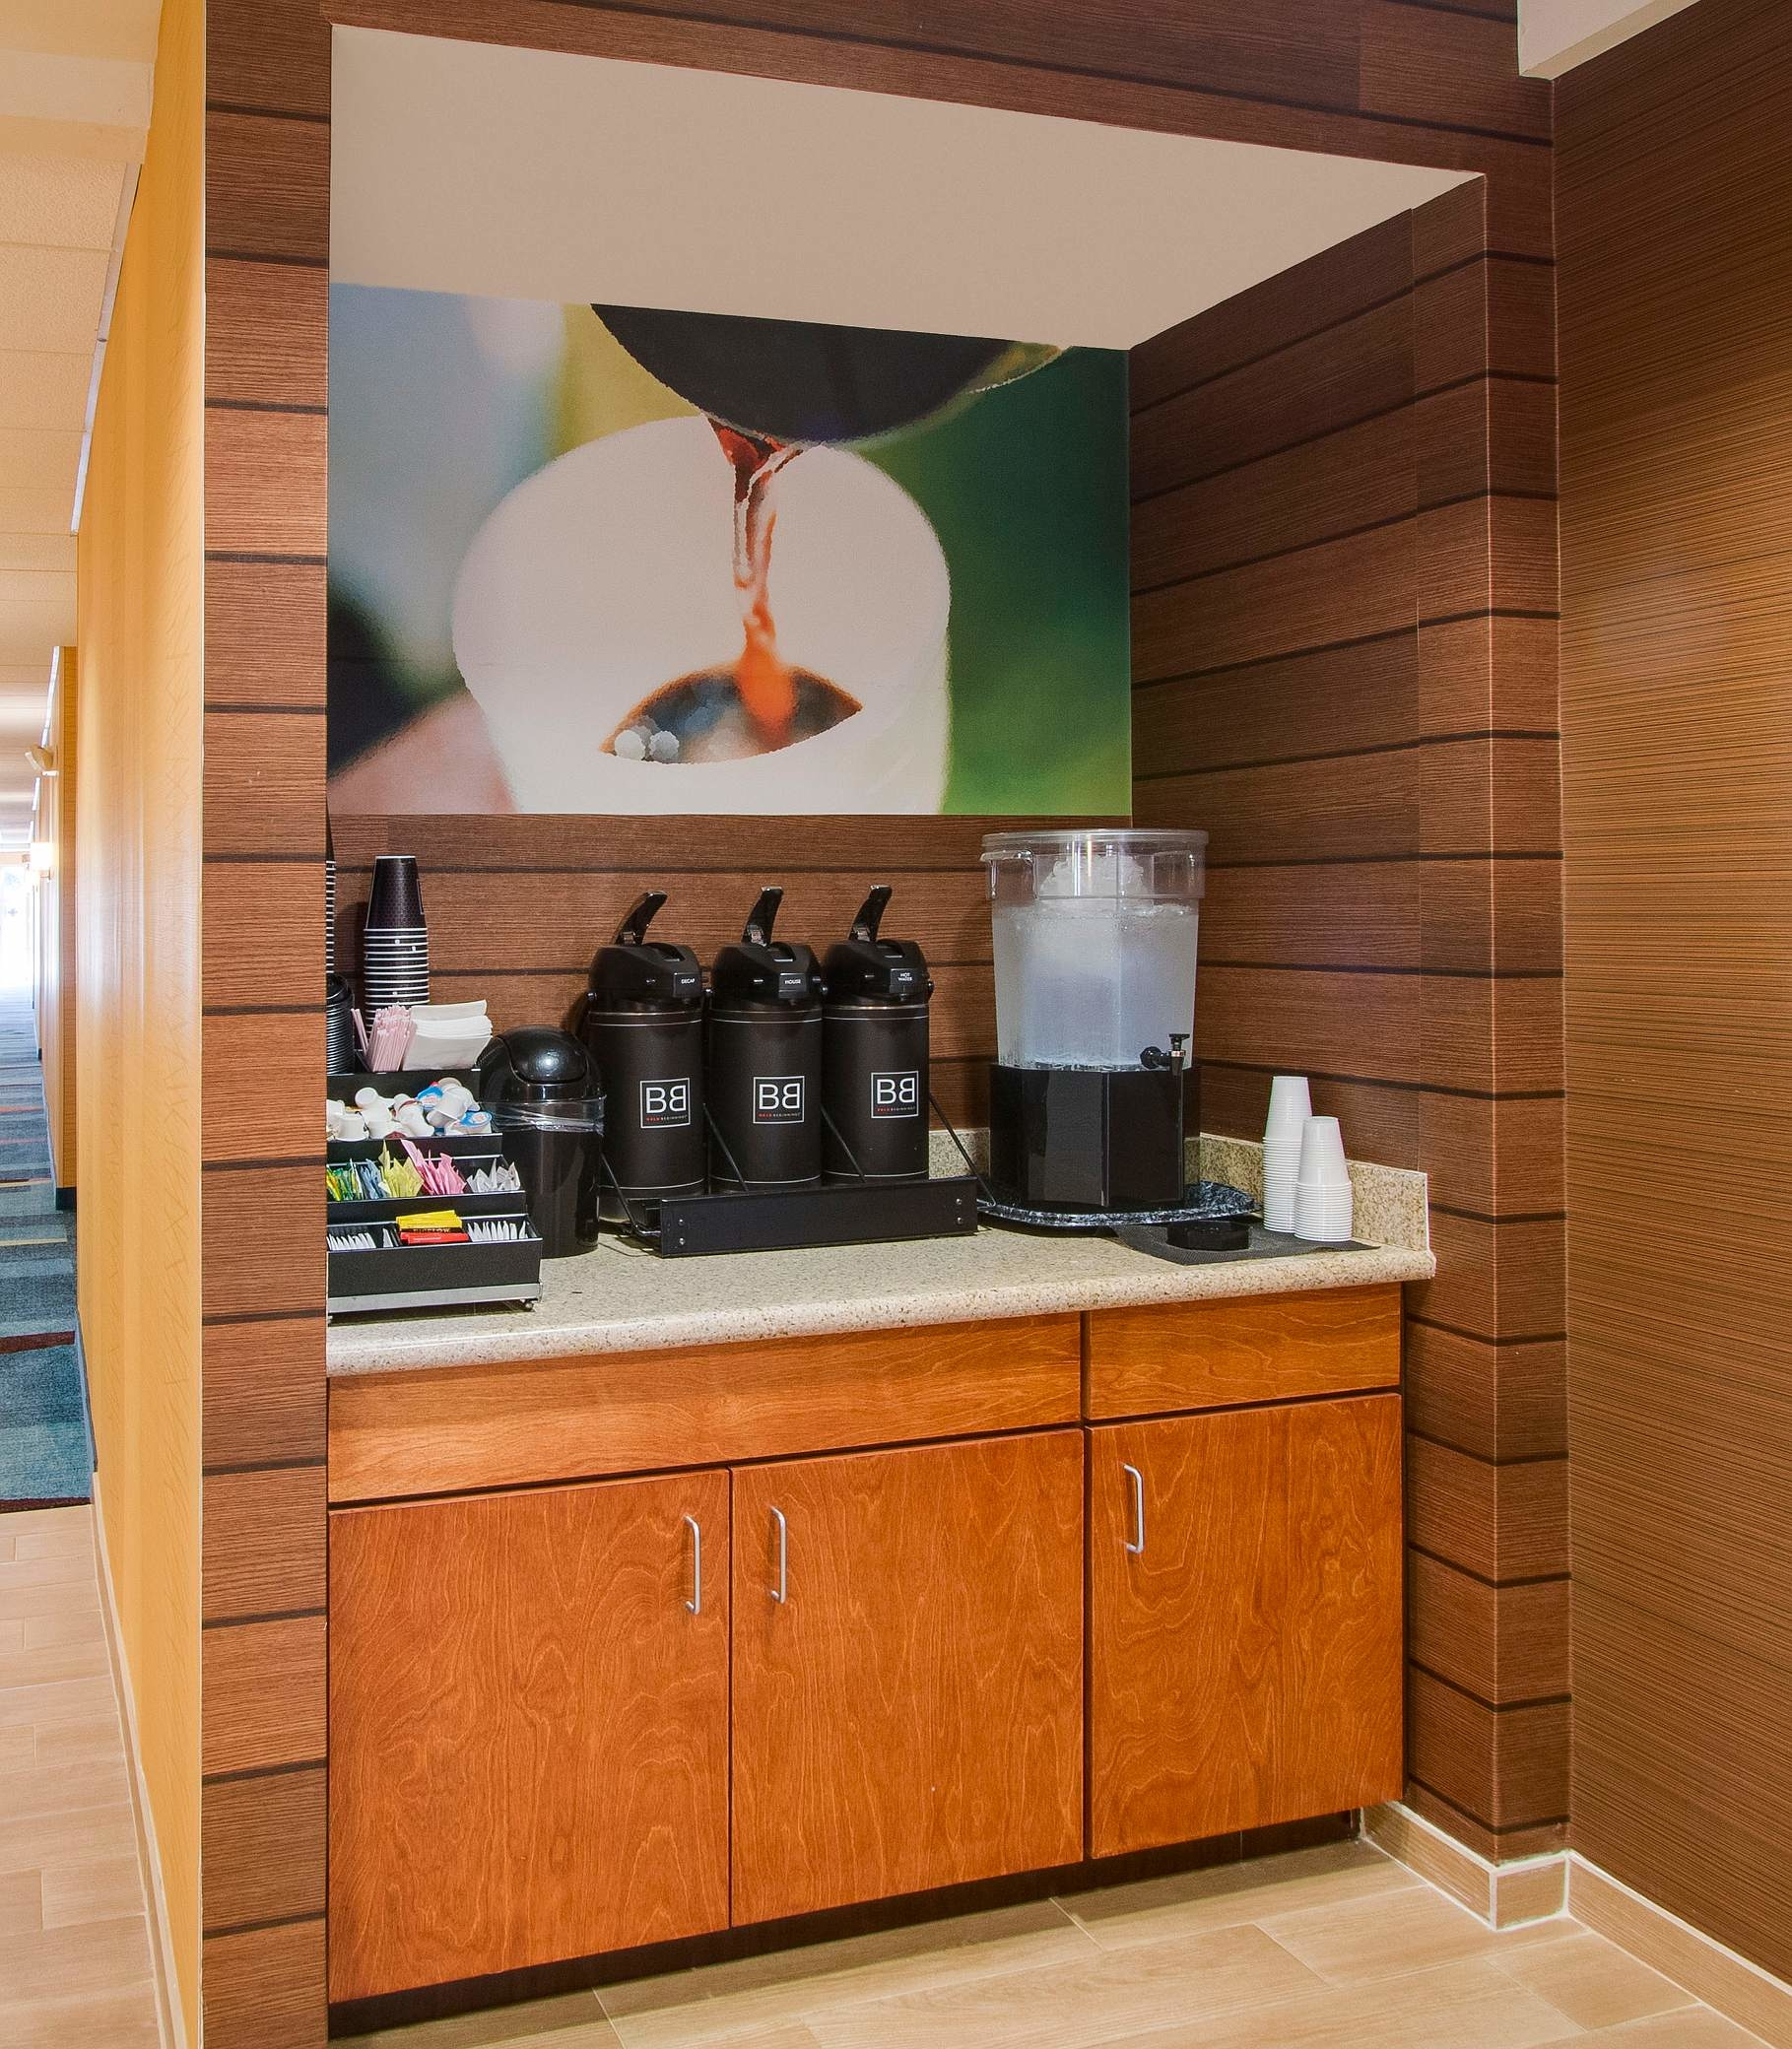 Fairfield Inn & Suites by Marriott Clermont image 18